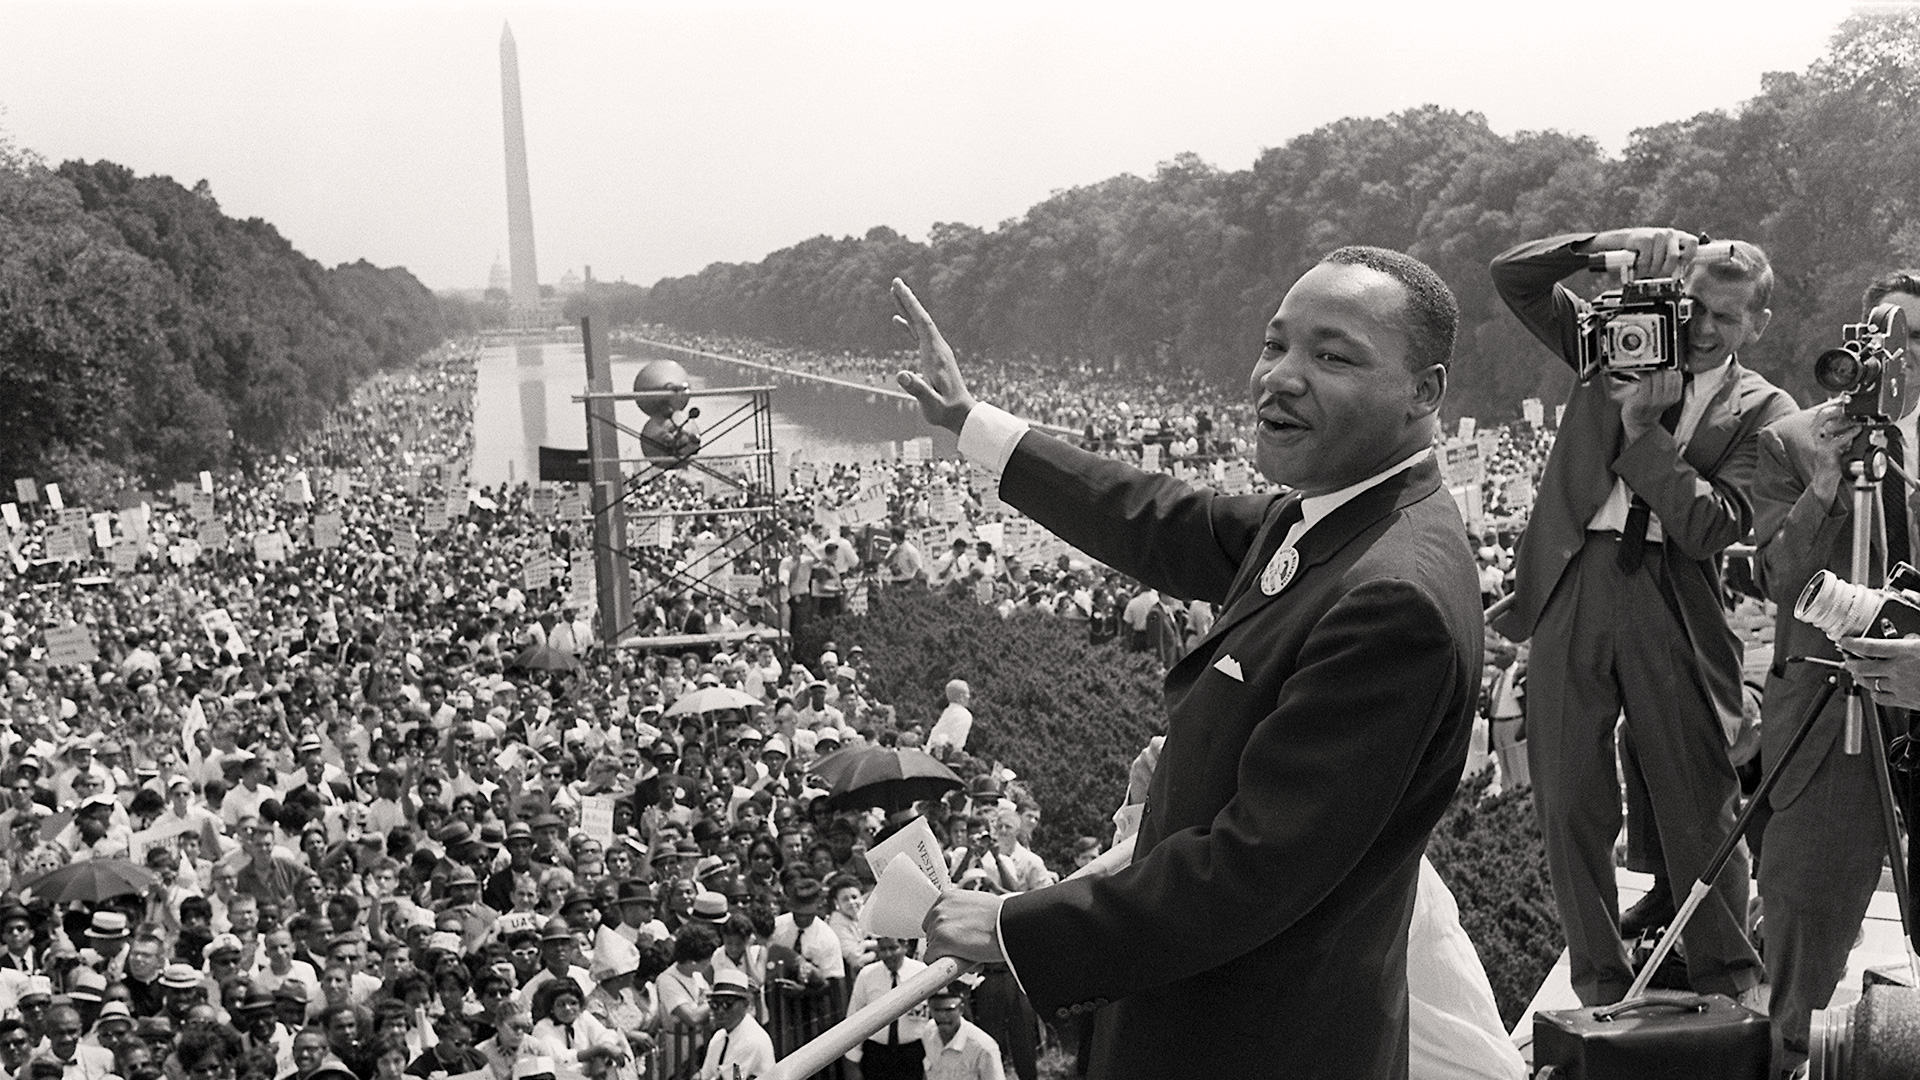 dream essay have i speech  martin luther king jr student essay